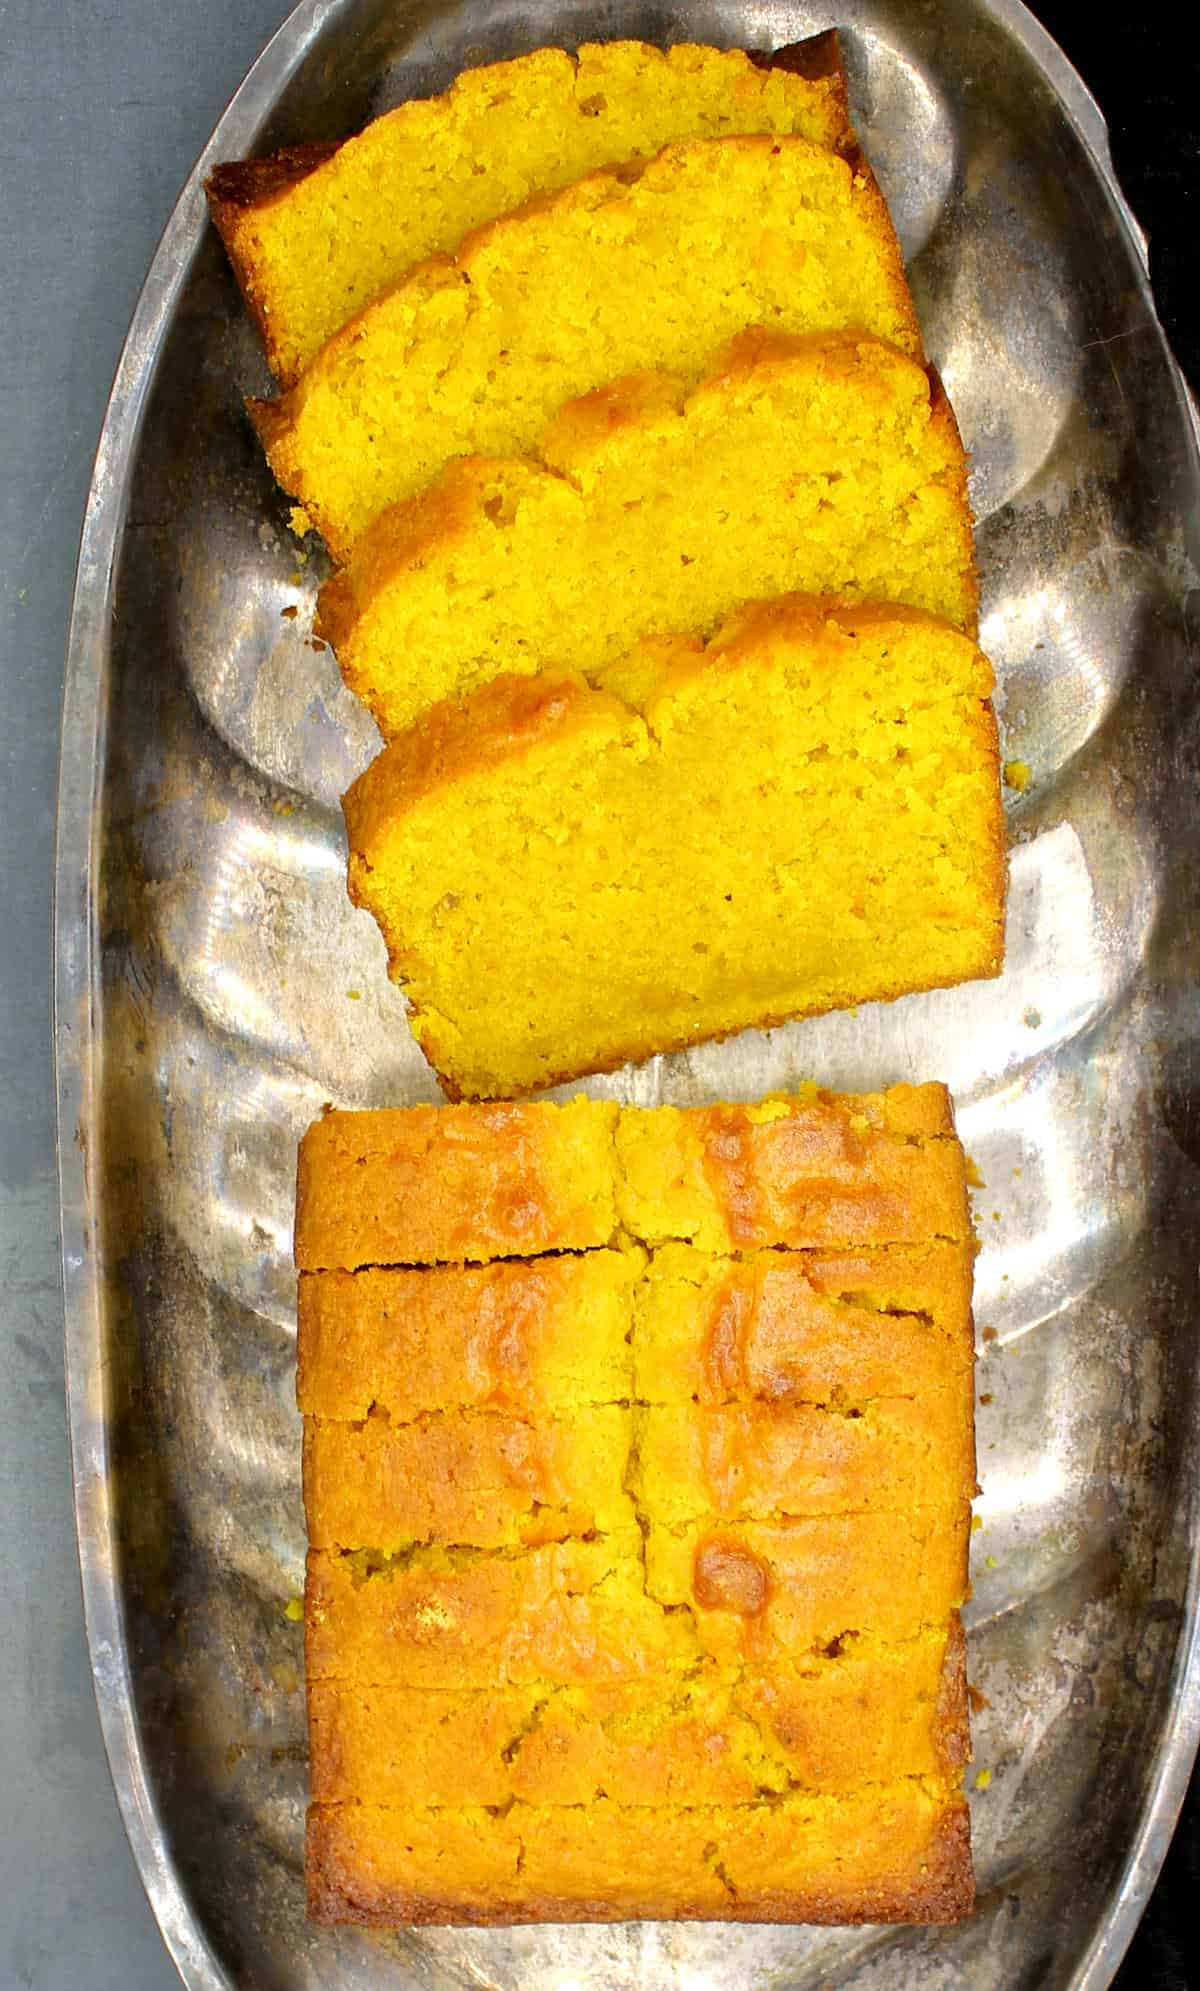 A sliced vegan cardamom turmeric cake in a silver serving tray